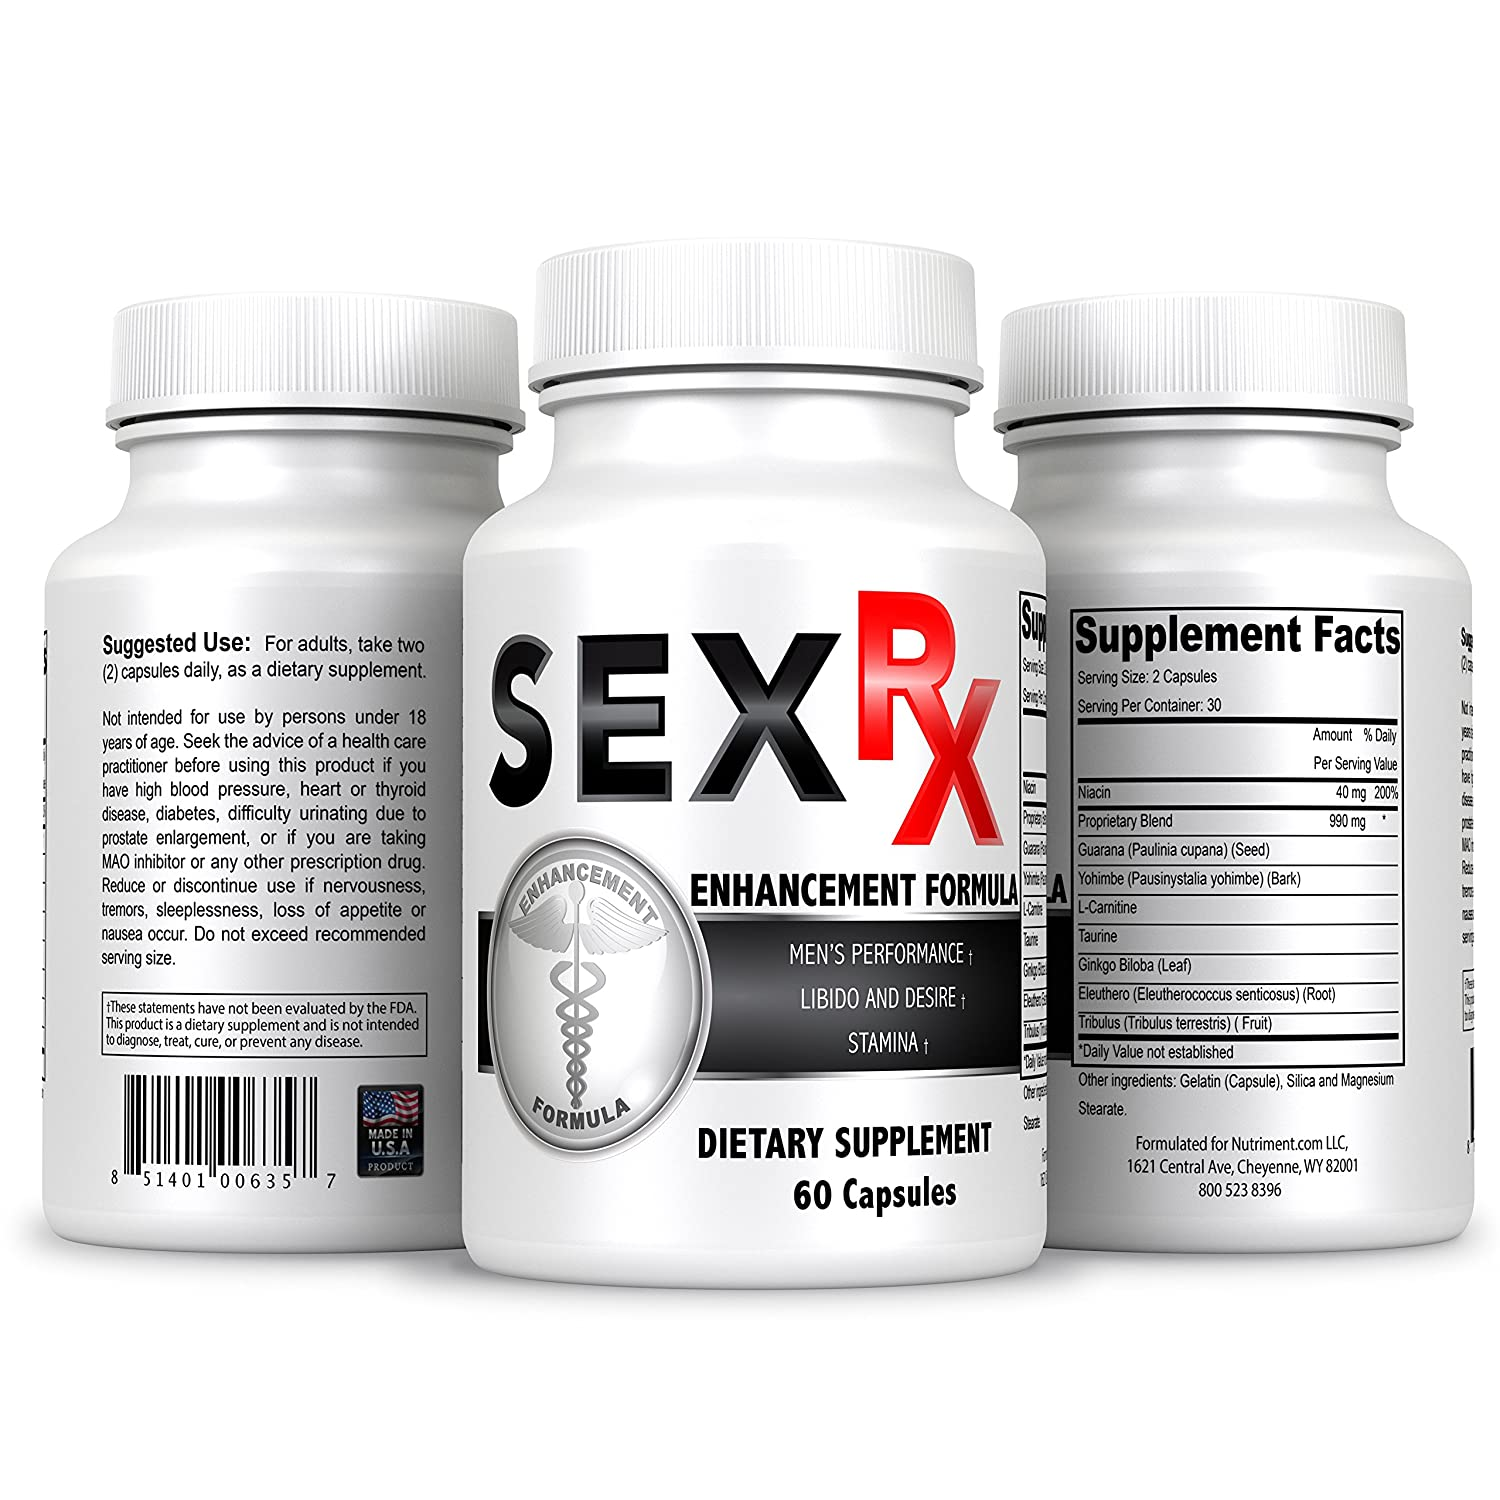 Eros desire female enhancement reviews